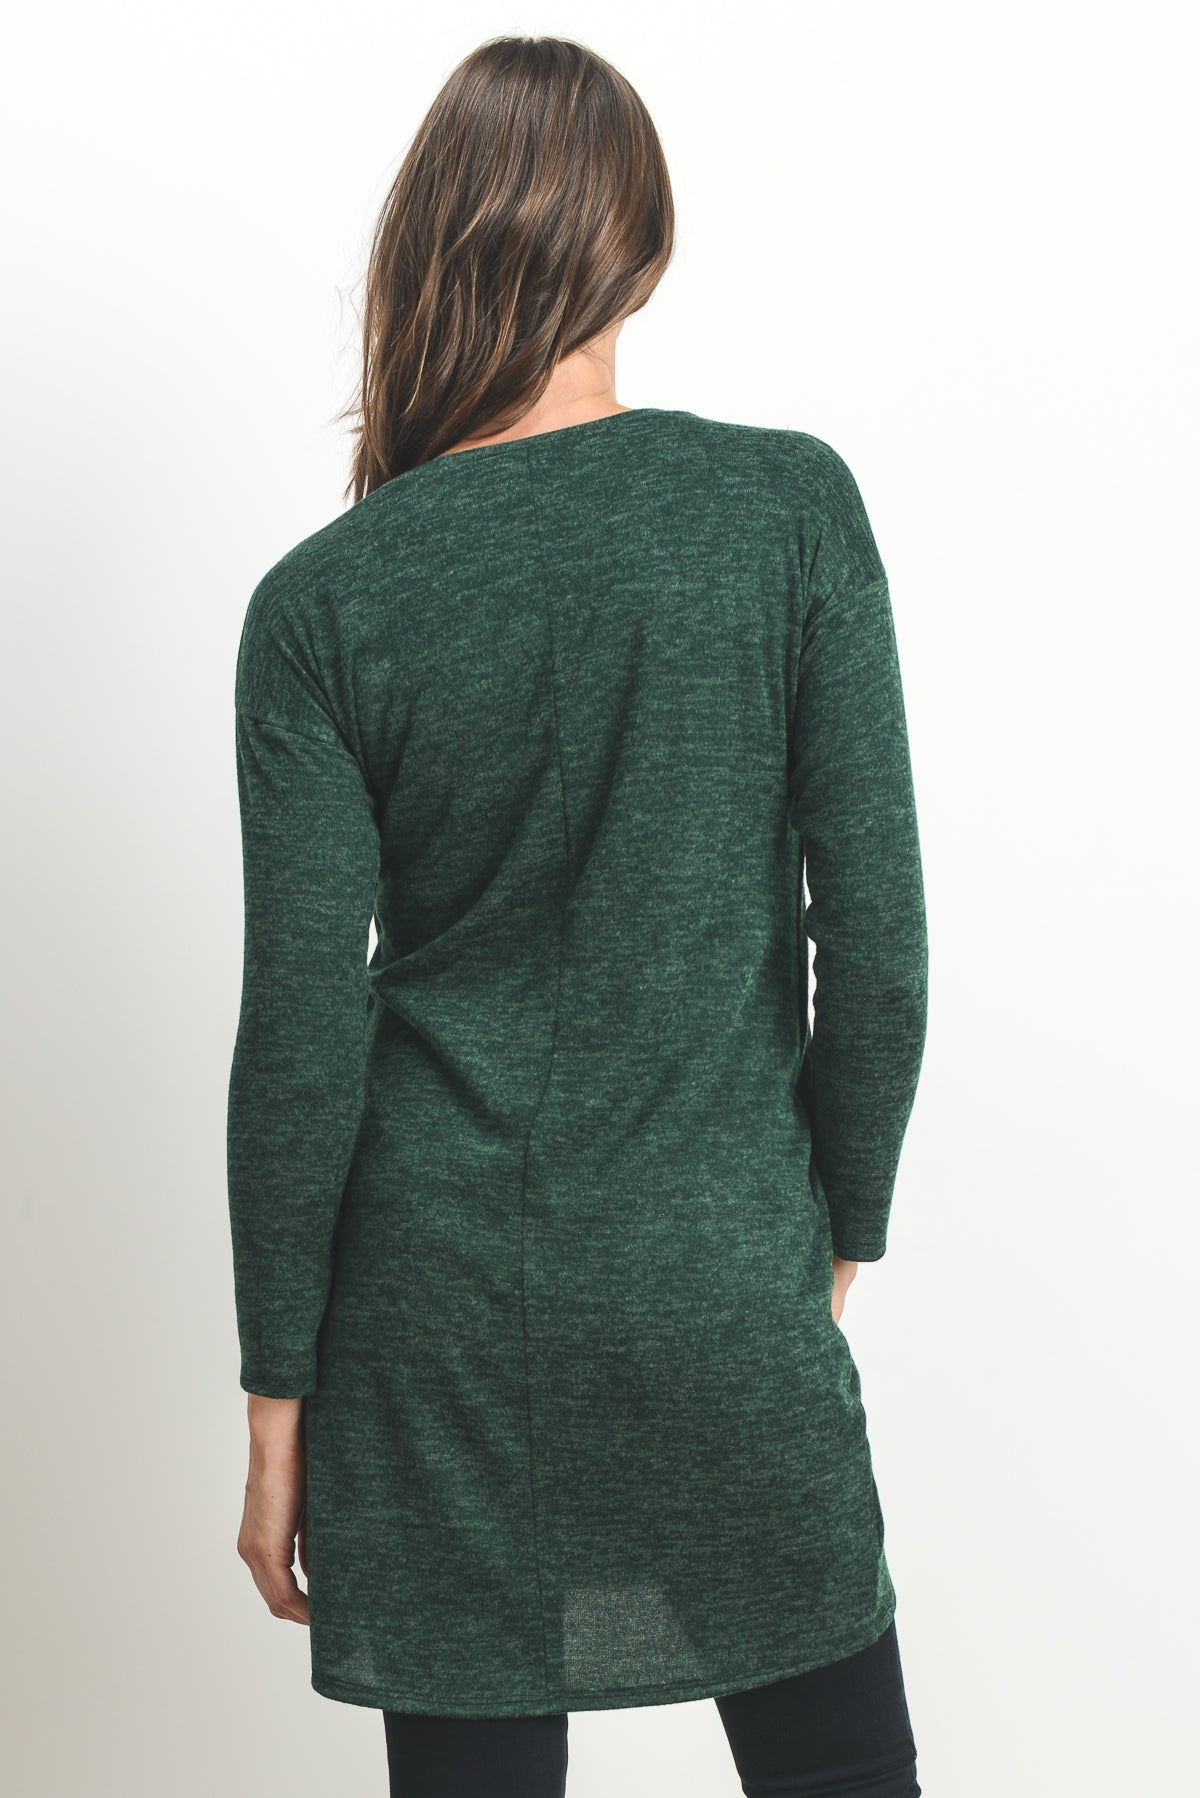 Long Sleeve Maternity & Nursing Sweater Tunic